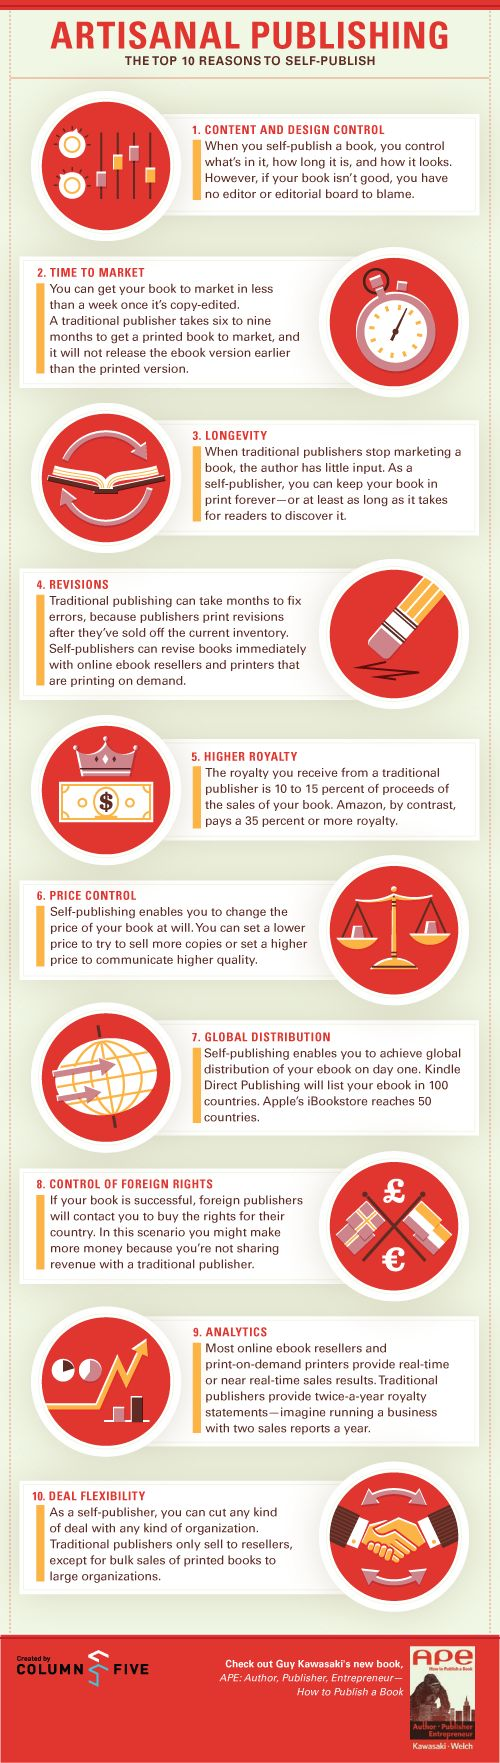 The Top 10 Reasons To Selfpublish [infographic]